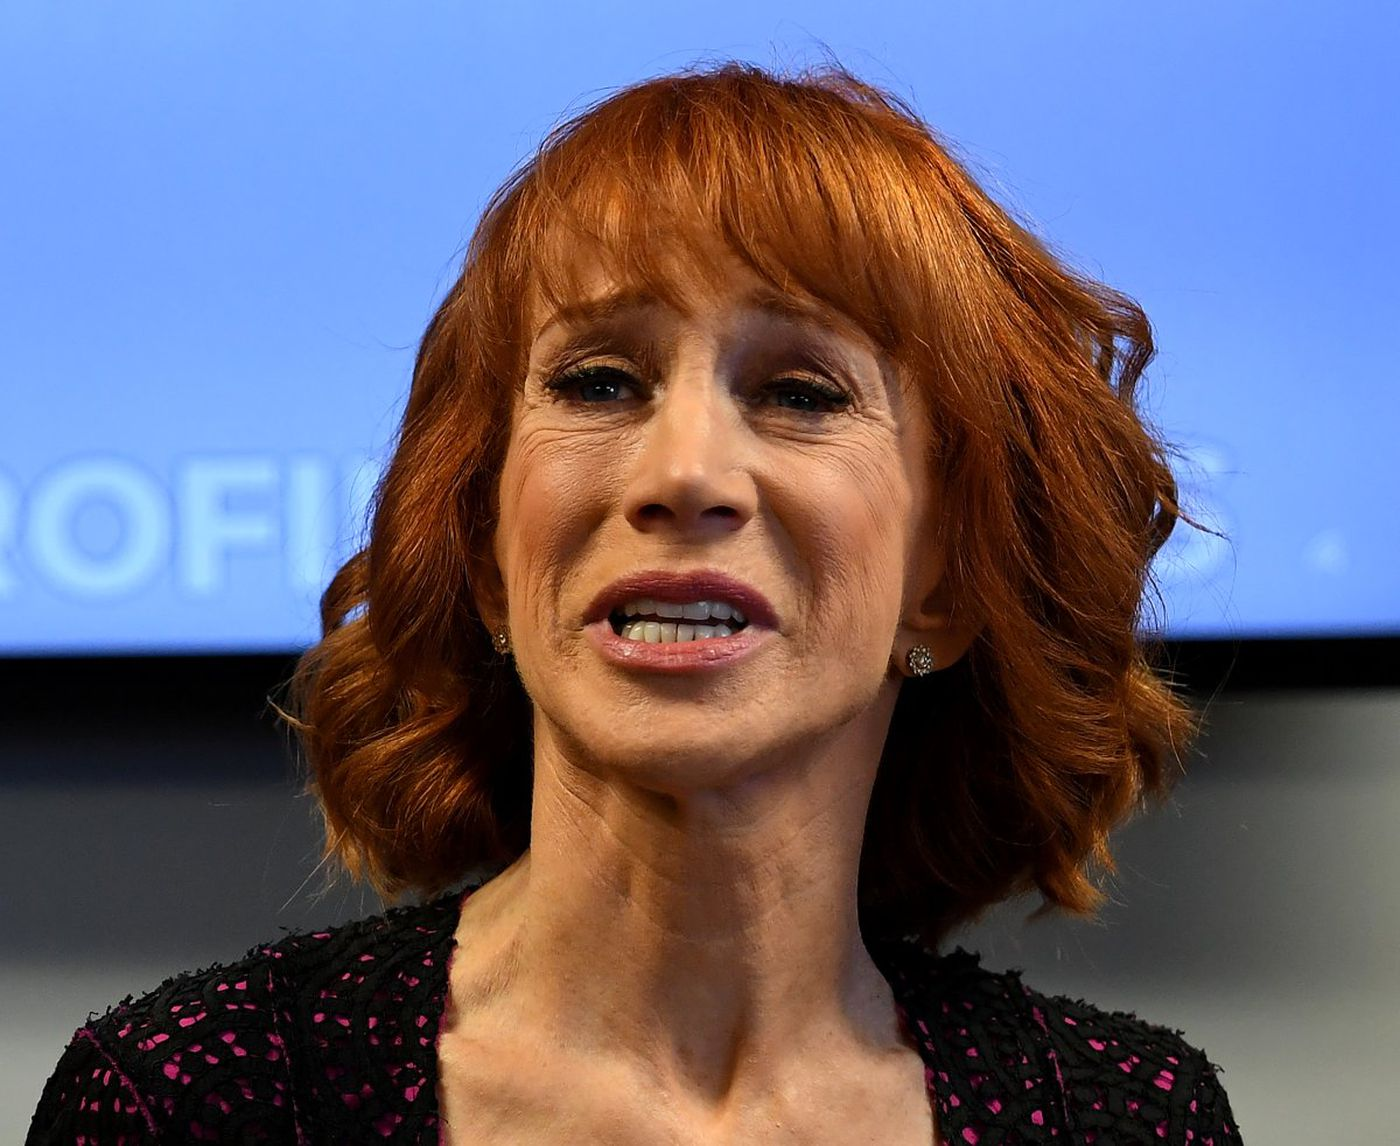 STASI  Kathy Griffin doesn t get to complain about being bullied     STASI  Kathy Griffin doesn t get to complain about being bullied after that  severed